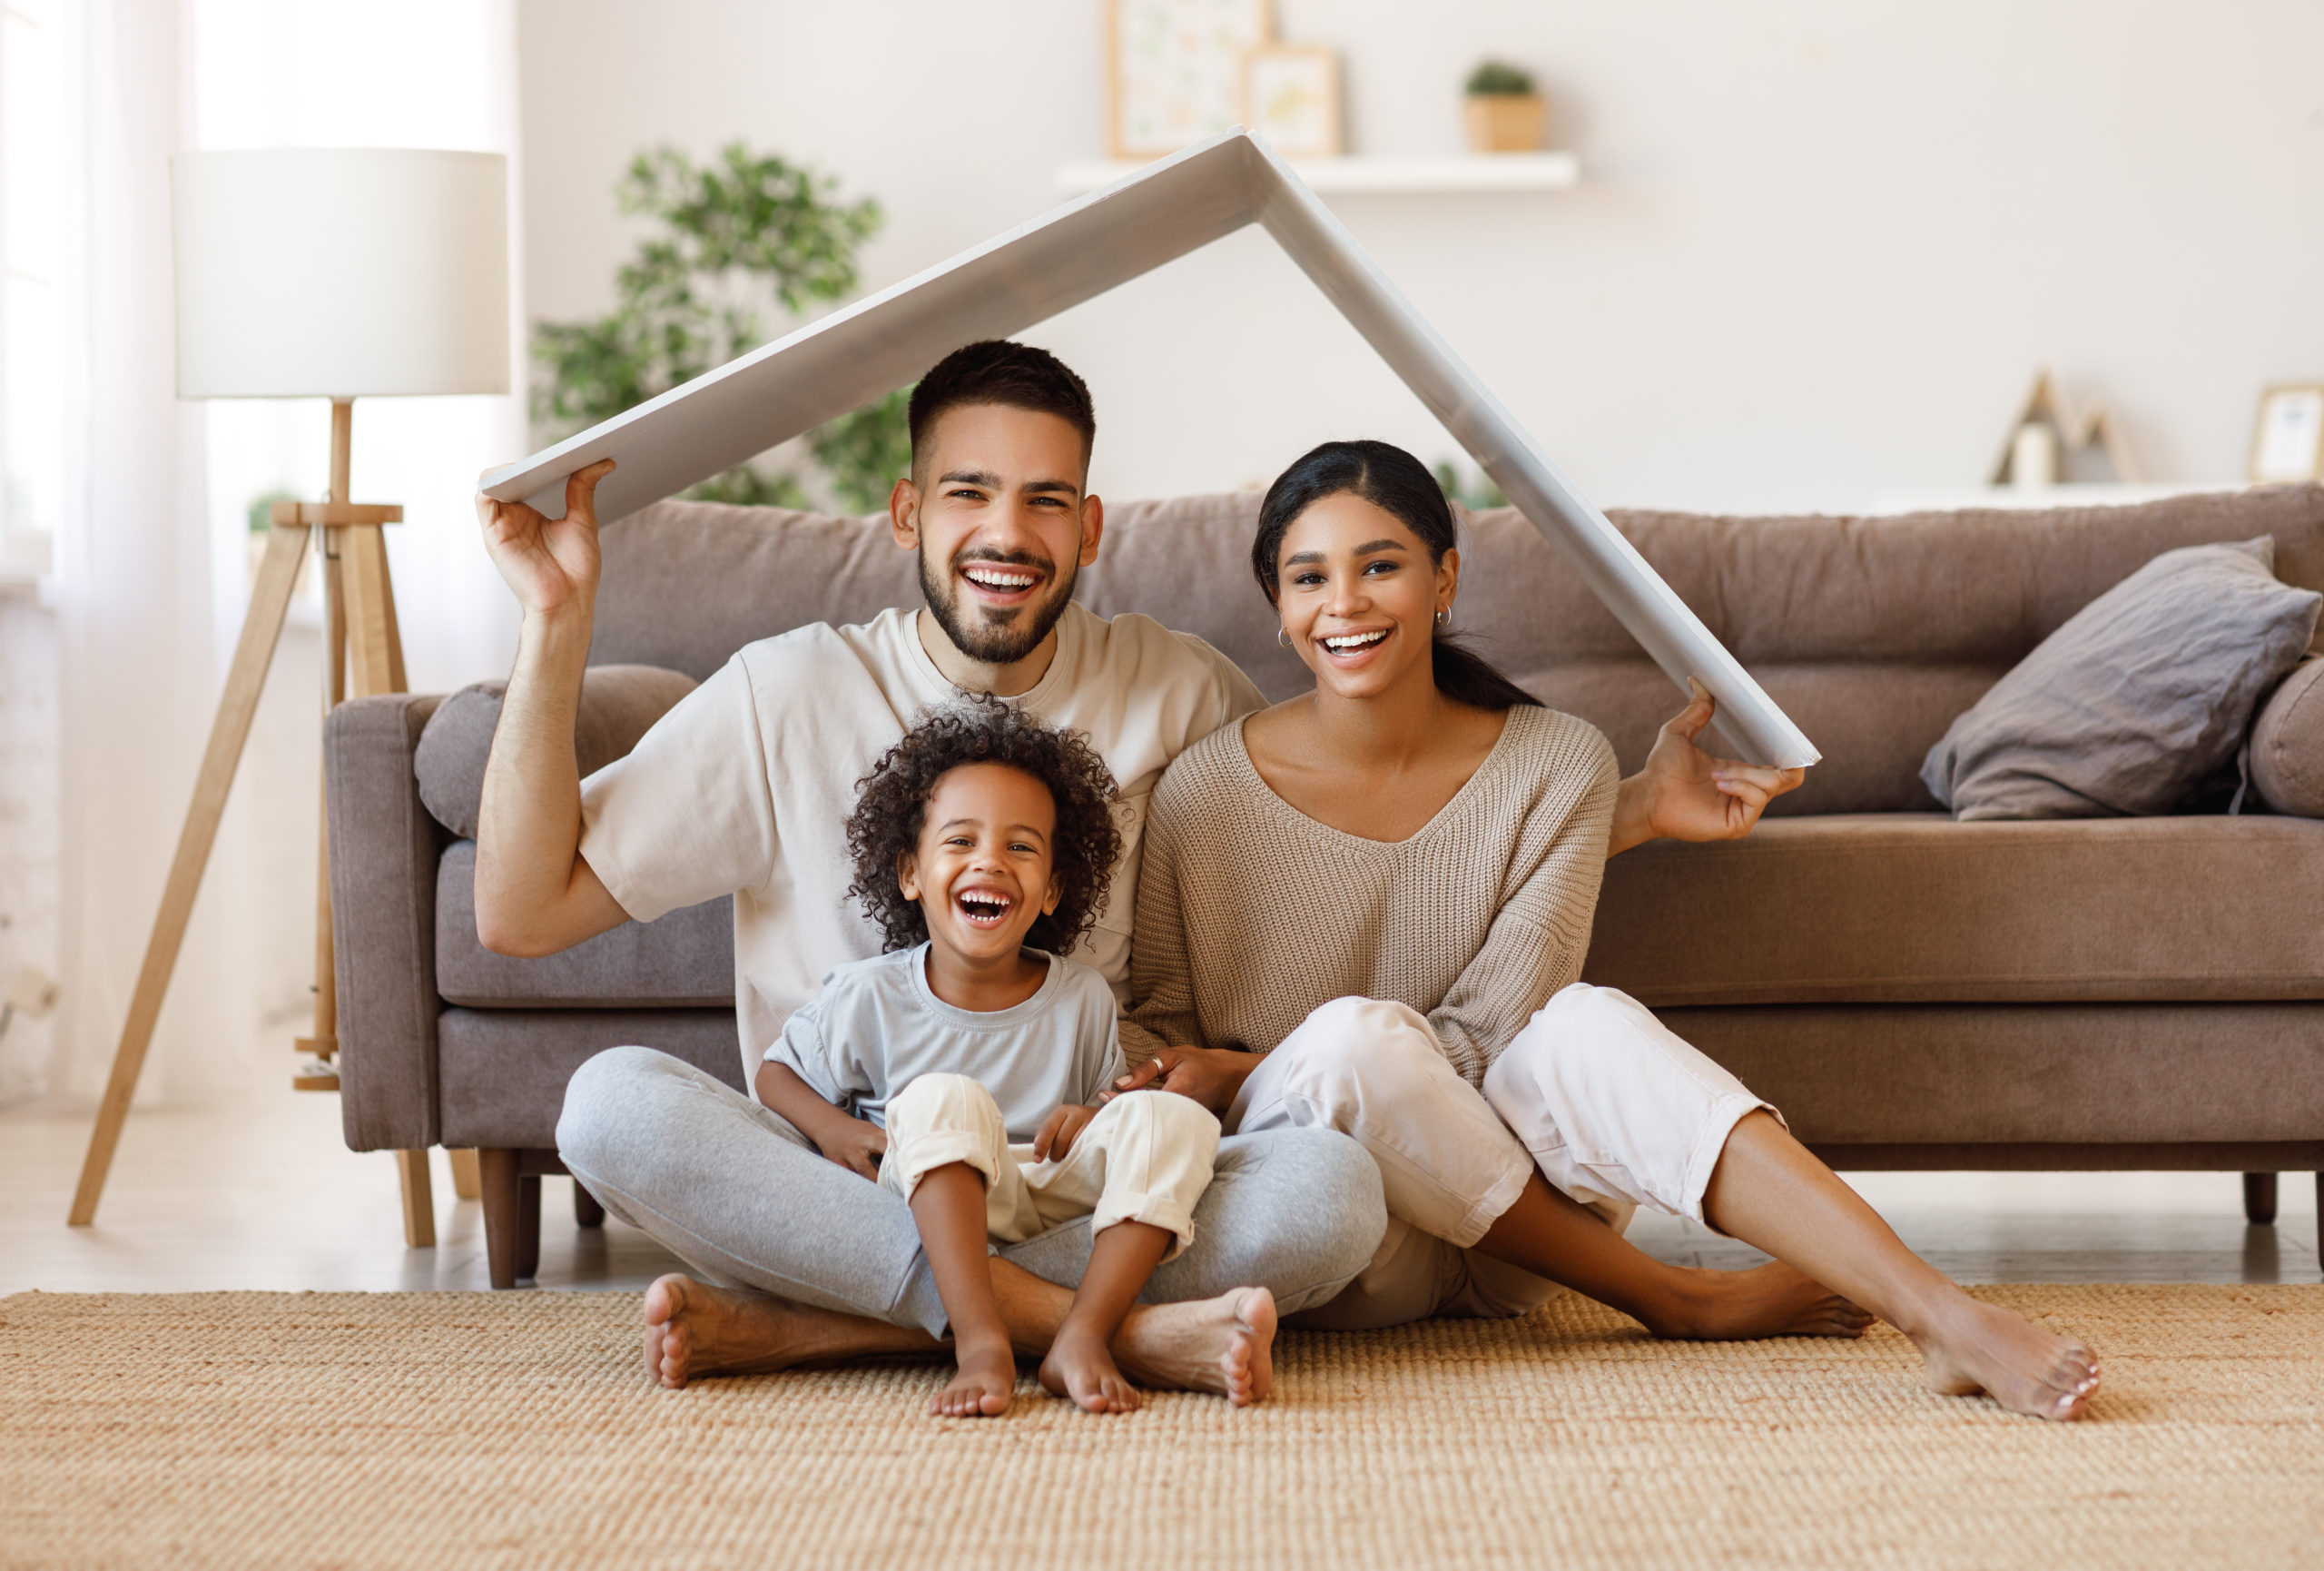 Cheerful parents with child smiling and keeping roof mockup over heads while sitting on floor in cozy living room during relocation